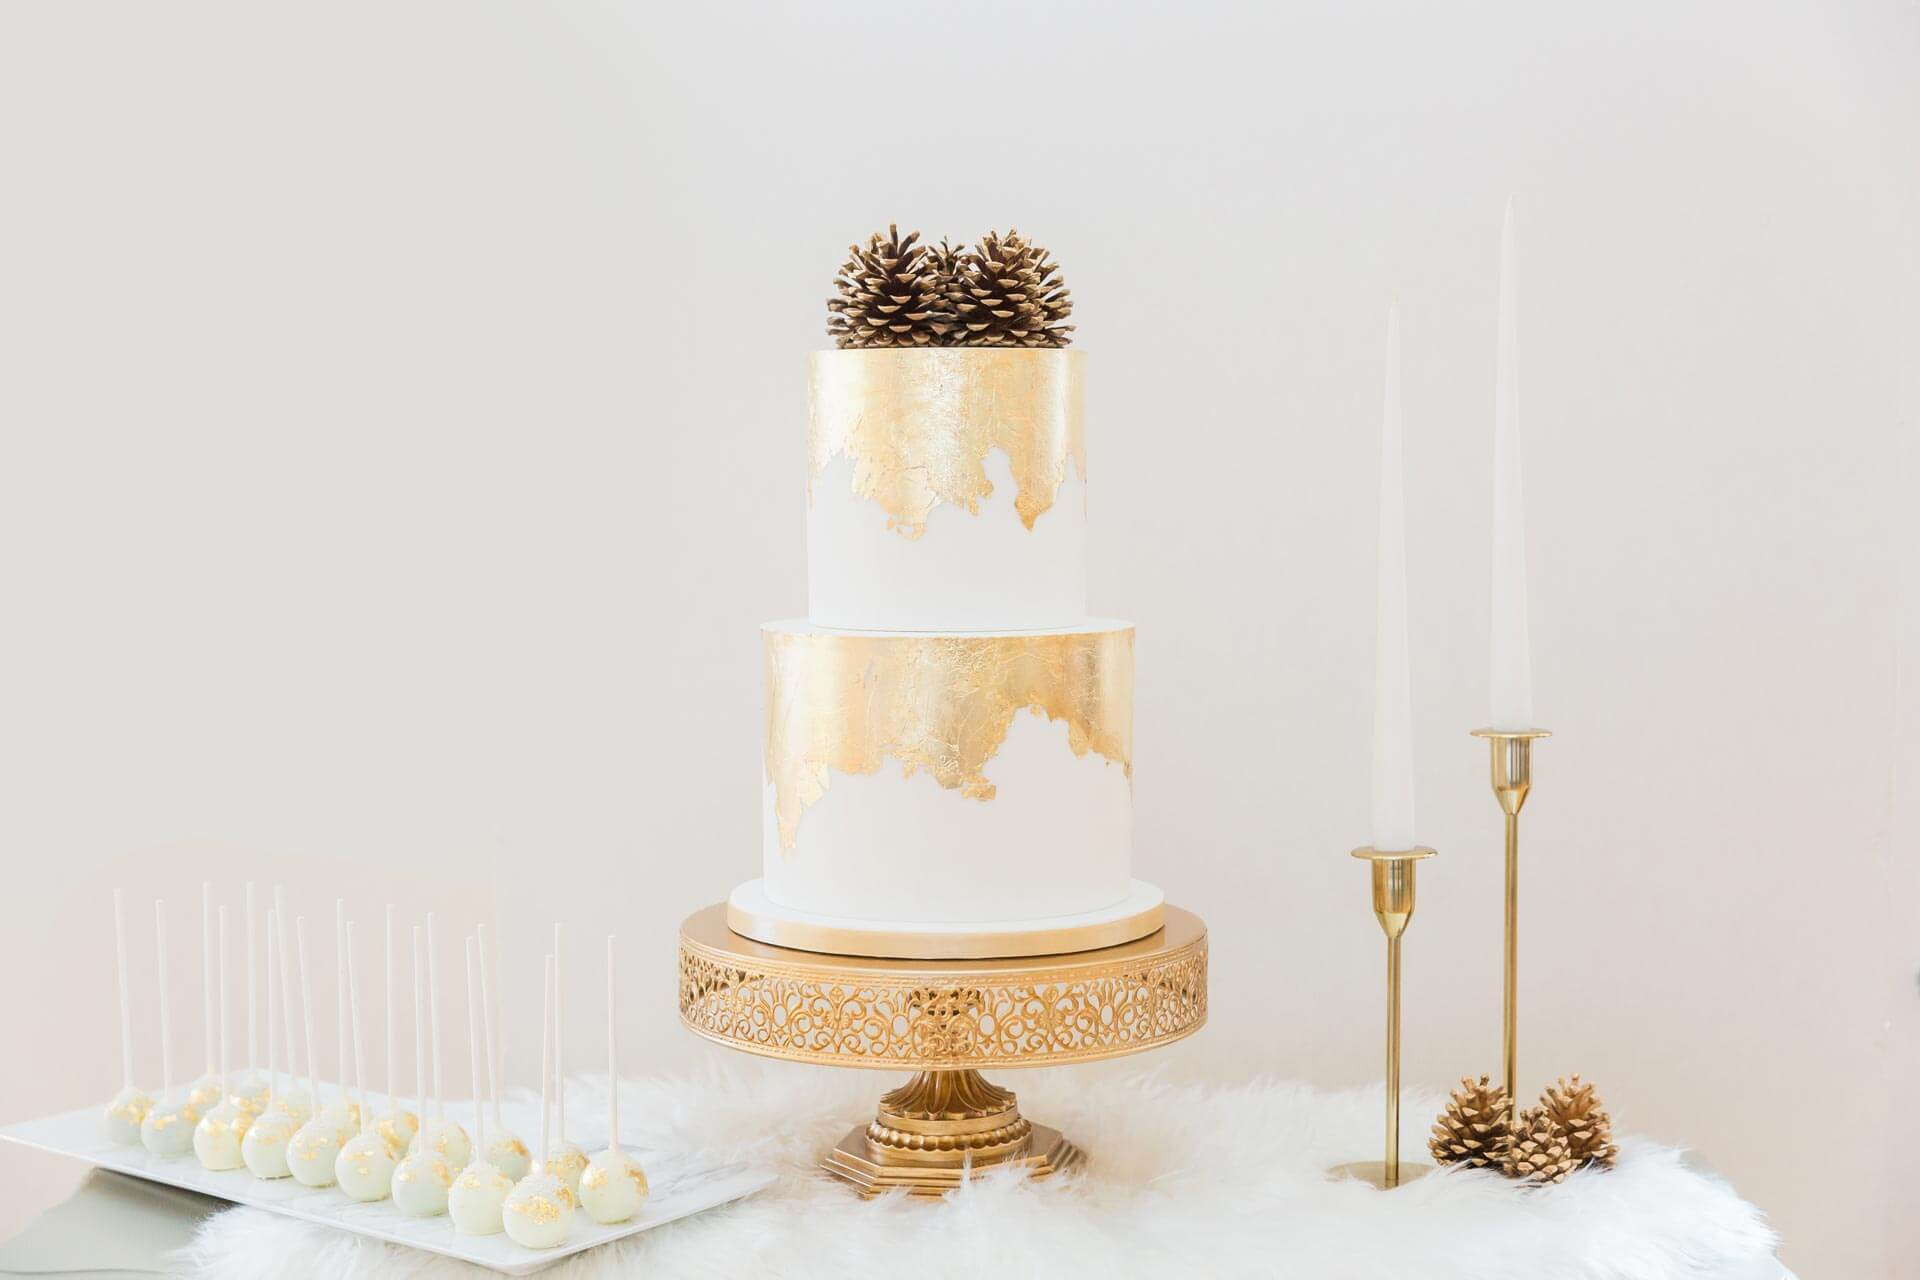 Luxury Winter Wedding Cake | By Posh & Cake